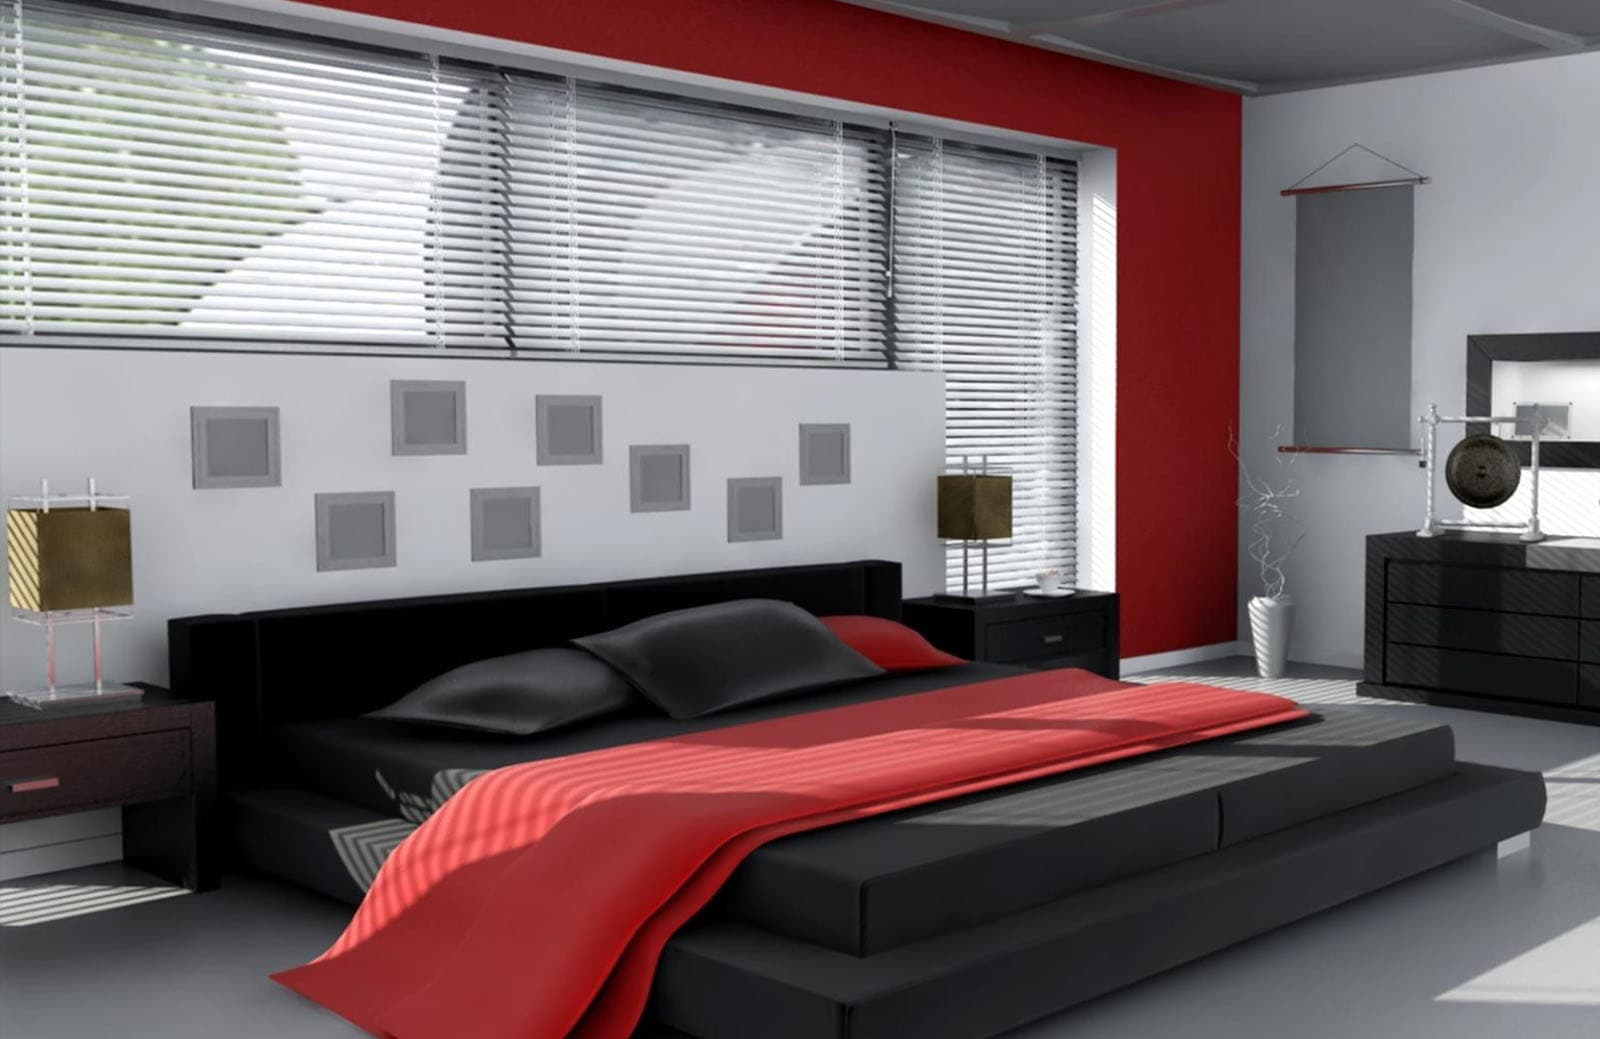 Home furnishings kitchens appliances sofas beds